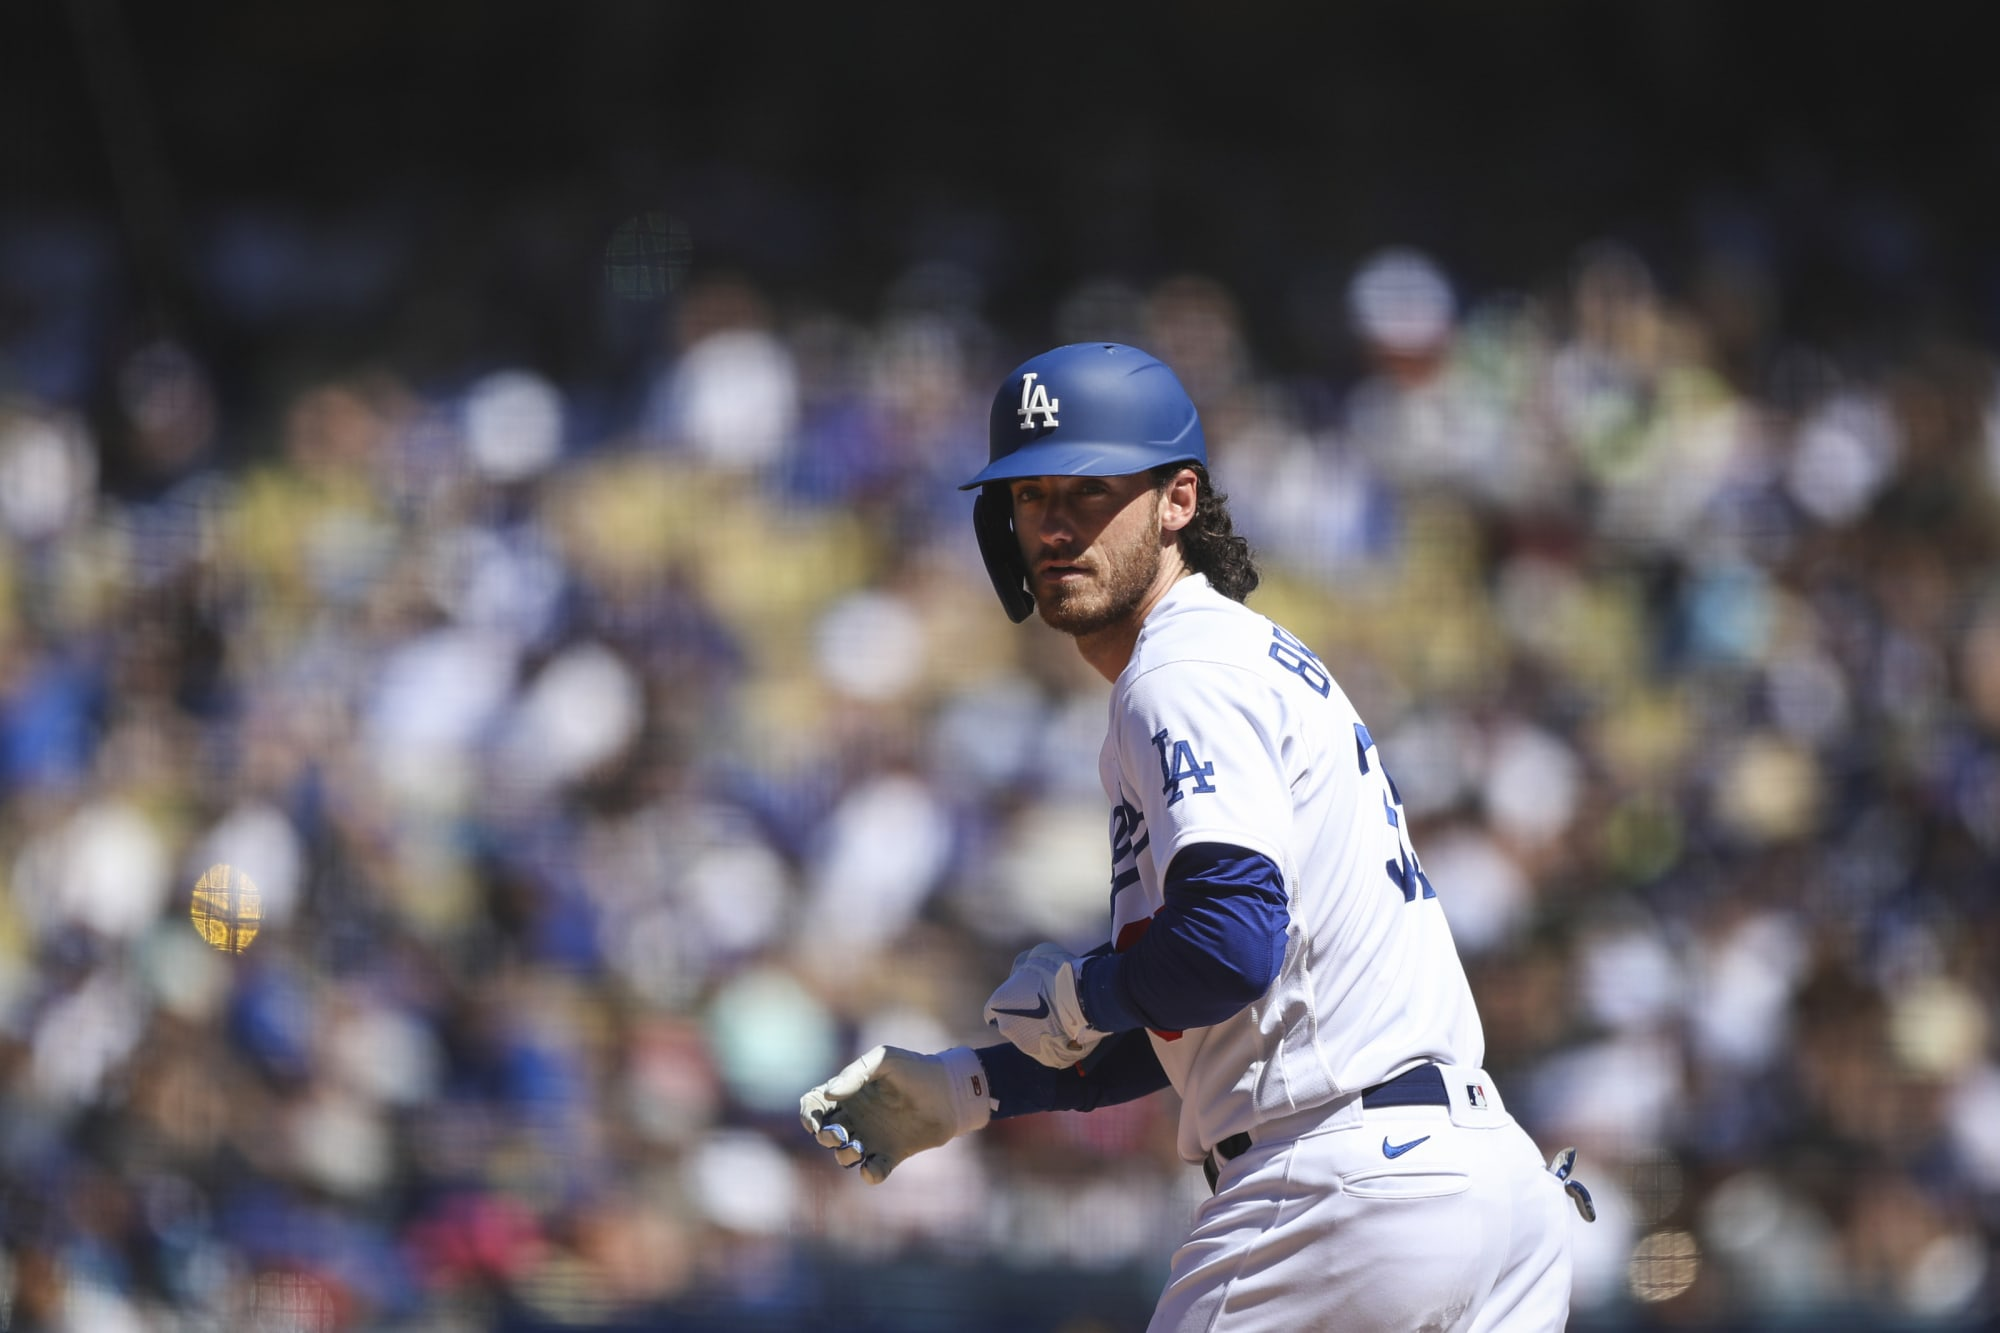 Dodgers: Should Cody Bellinger be benched if healthy in postseason?